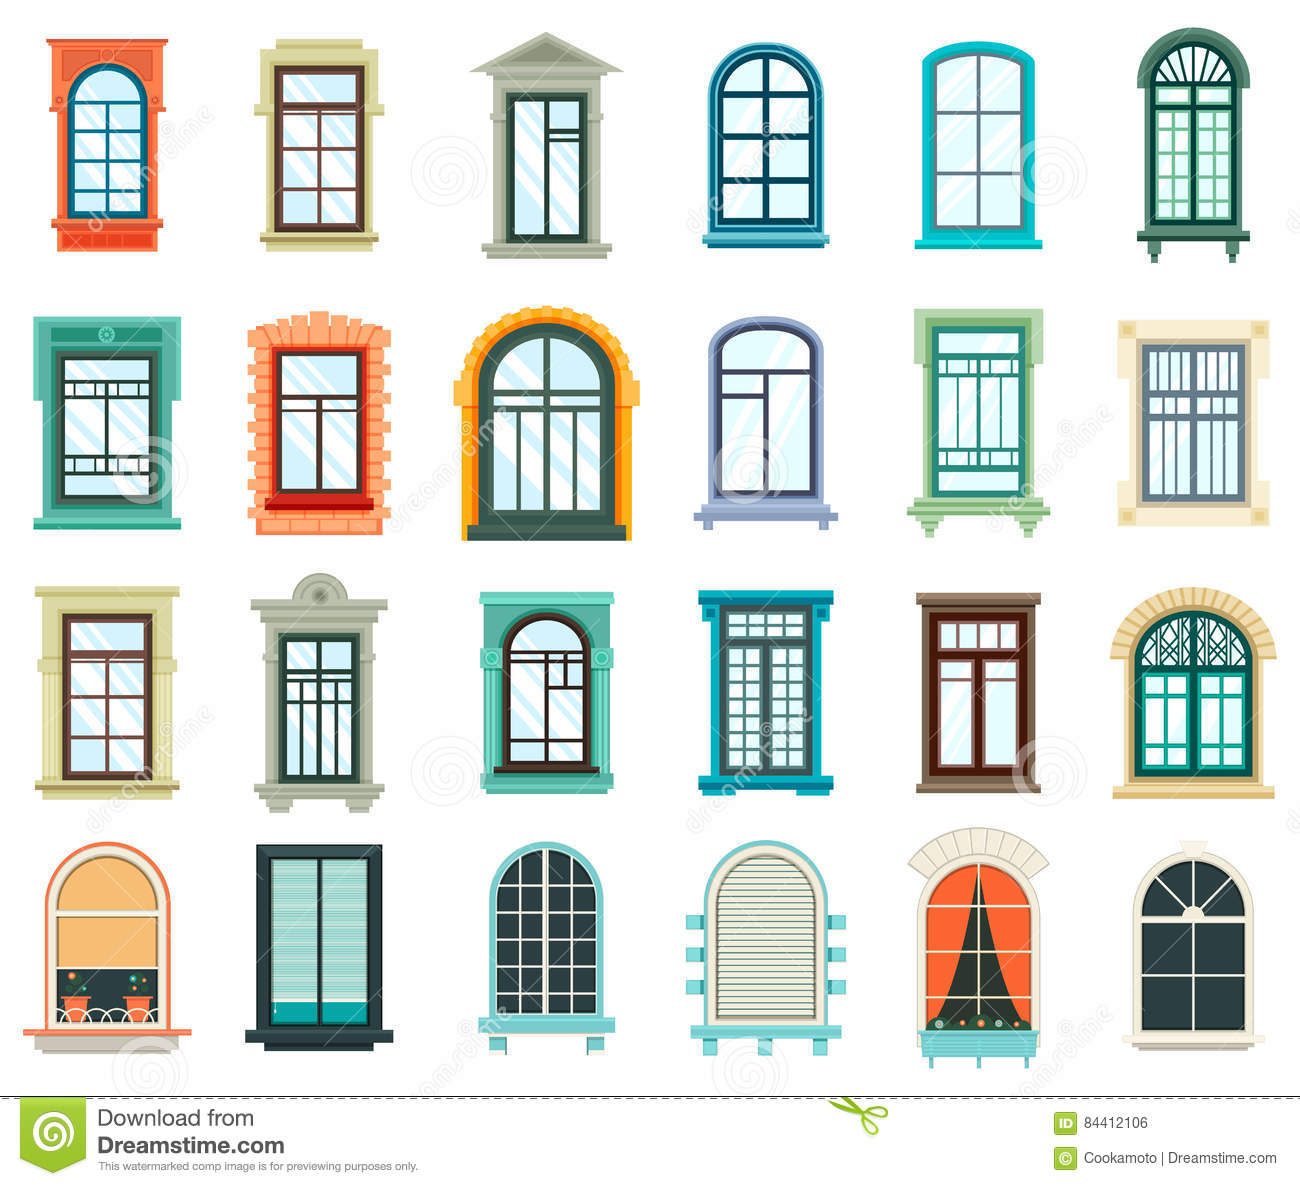 Indian House Exterior Design: Set Of Plastic And Wooden Window Frames Stock Vector